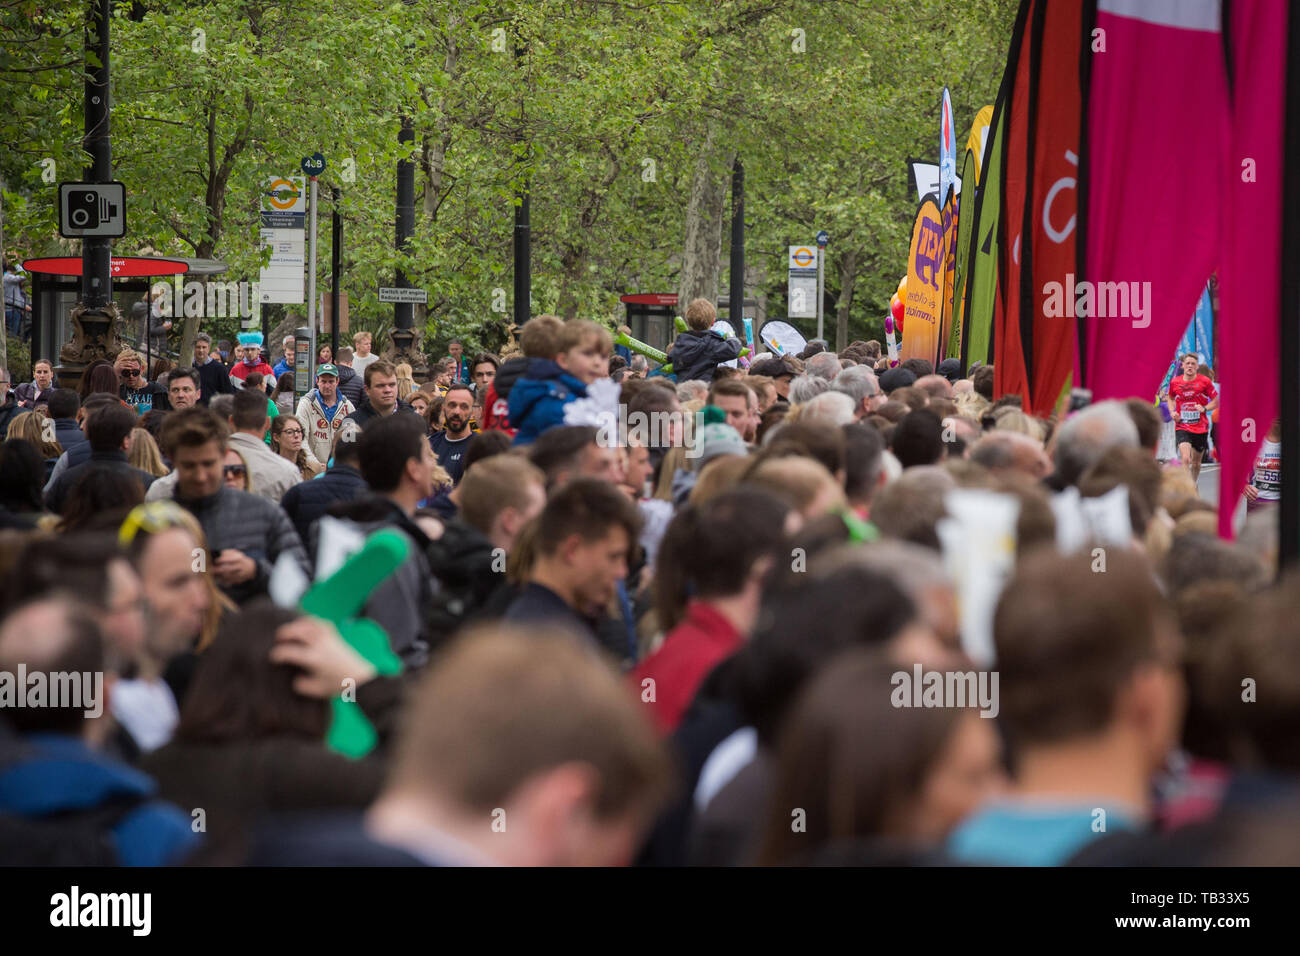 Spectators watch runners in the 2019 Virgin Money London Marathon along the Embankment.  Featuring: Atmosphere, View Where: London, United Kingdom When: 28 Apr 2019 Credit: Wheatley/WENN - Stock Image